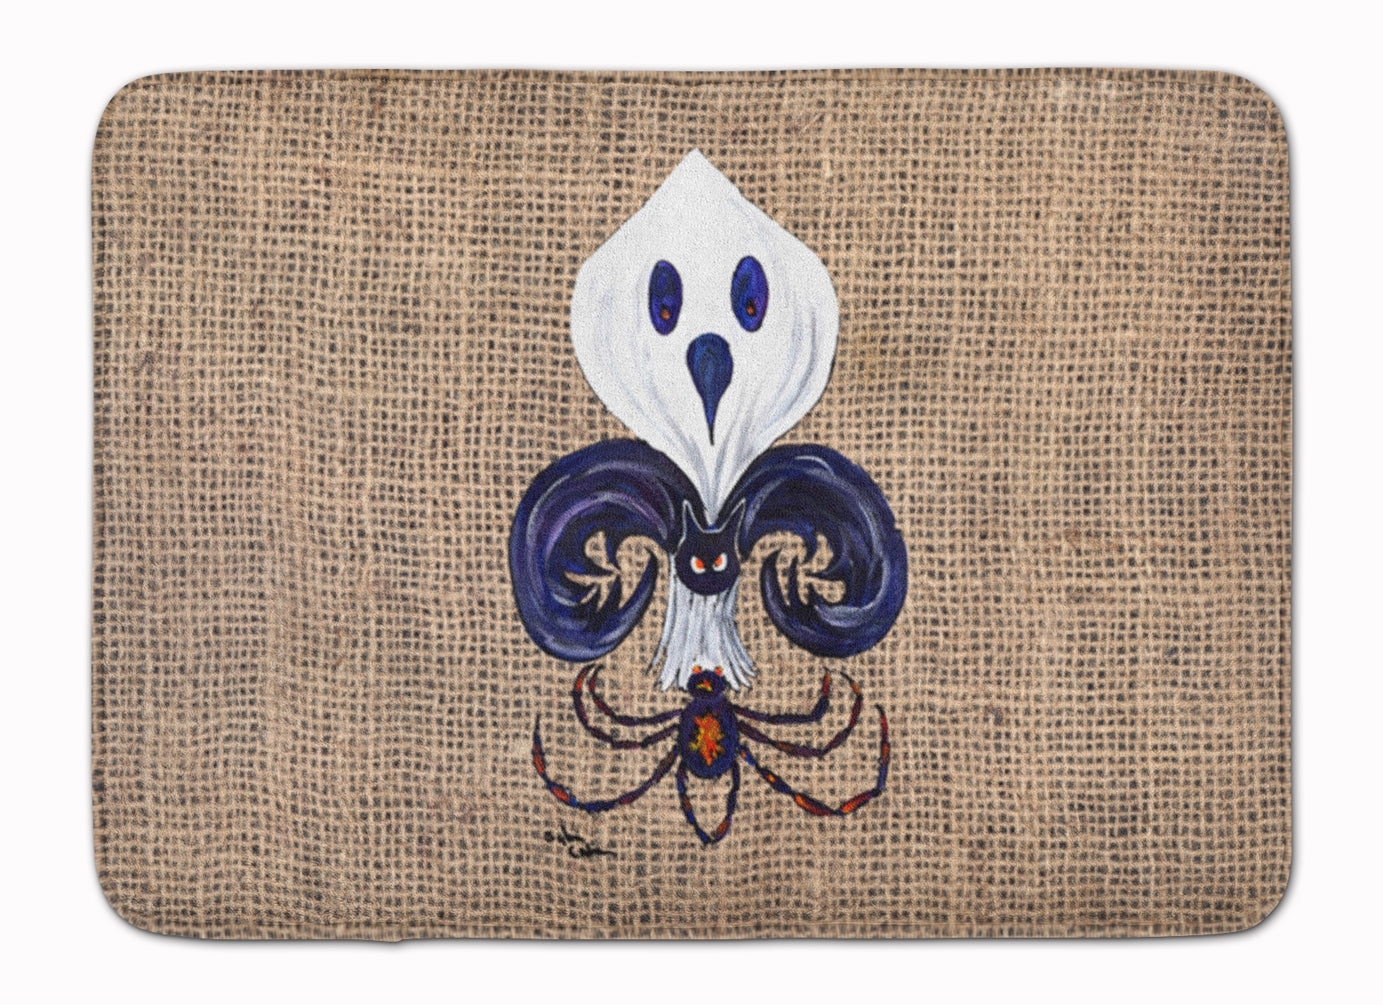 Buy this Halloween Ghost Spider Bat Fleur de lis Machine Washable Memory Foam Mat 8749RUG